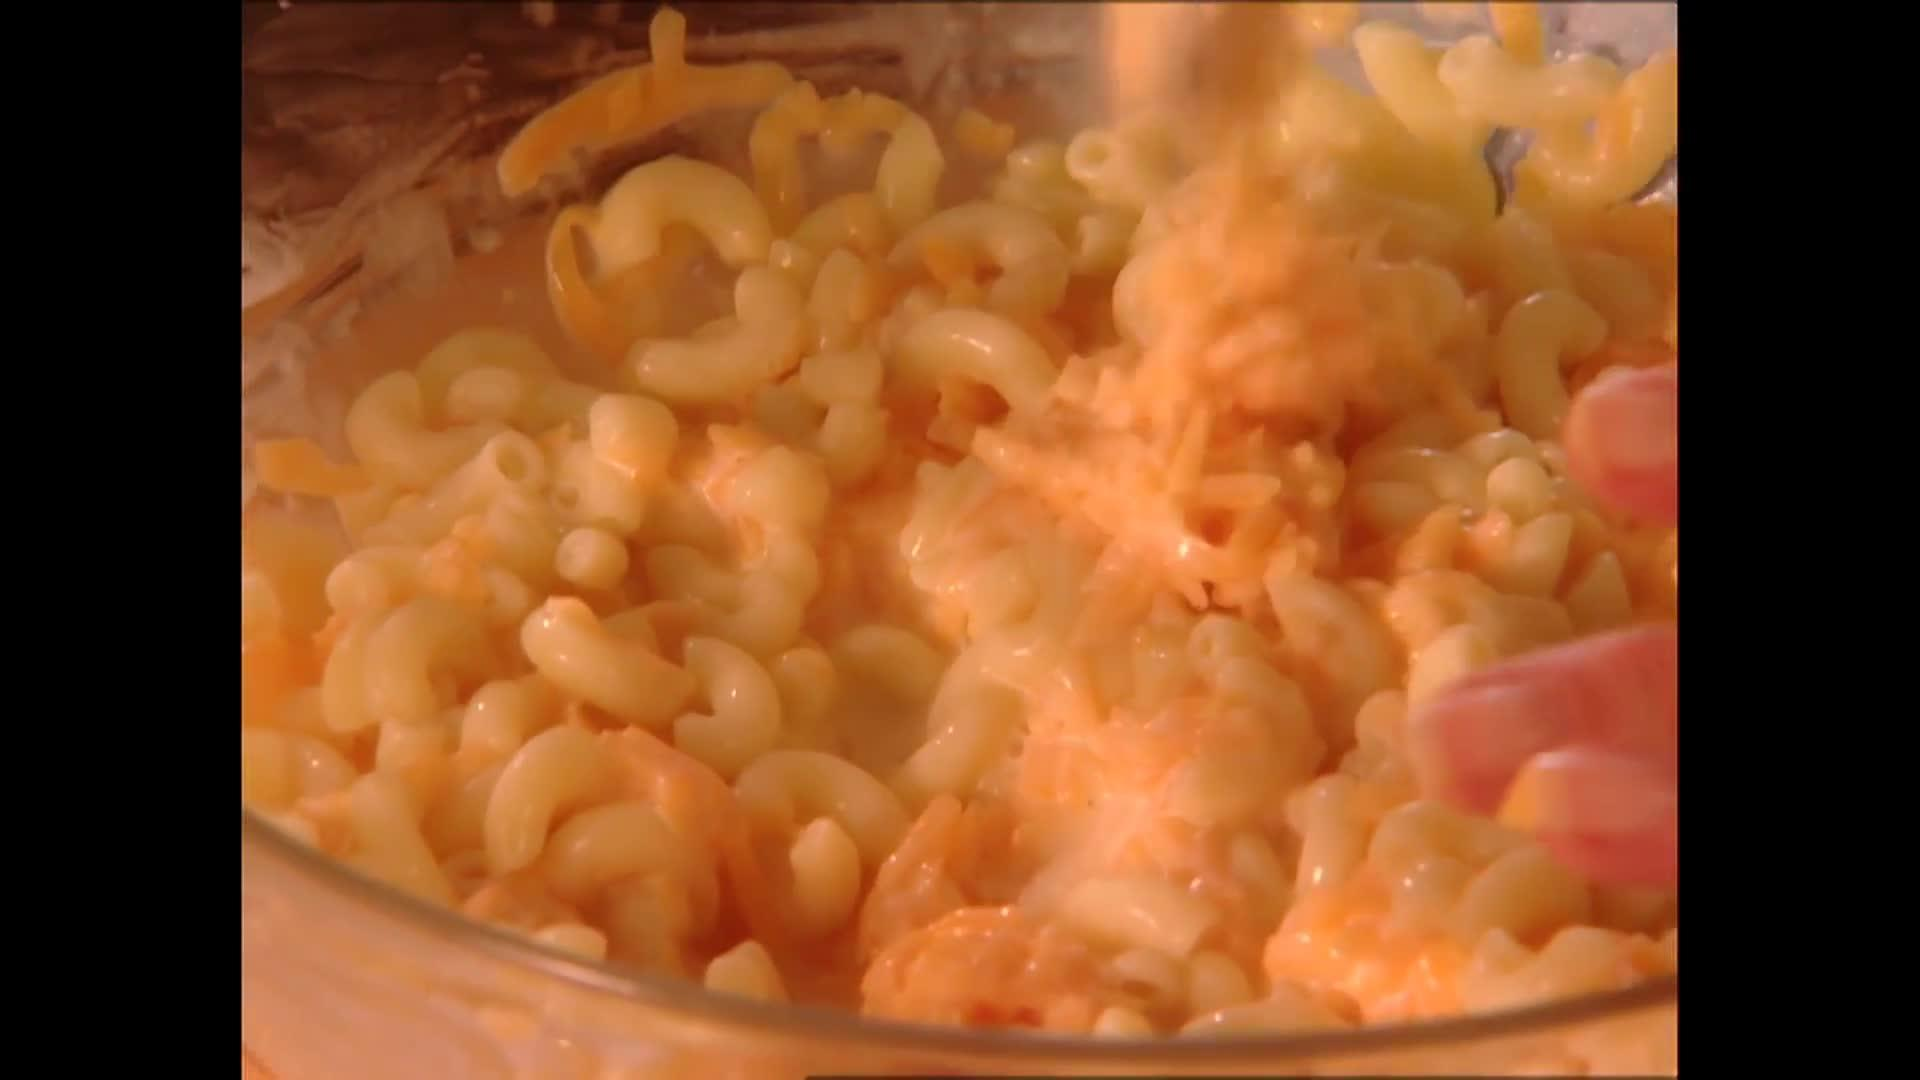 The Lady's Cheesy Mac thumbnail